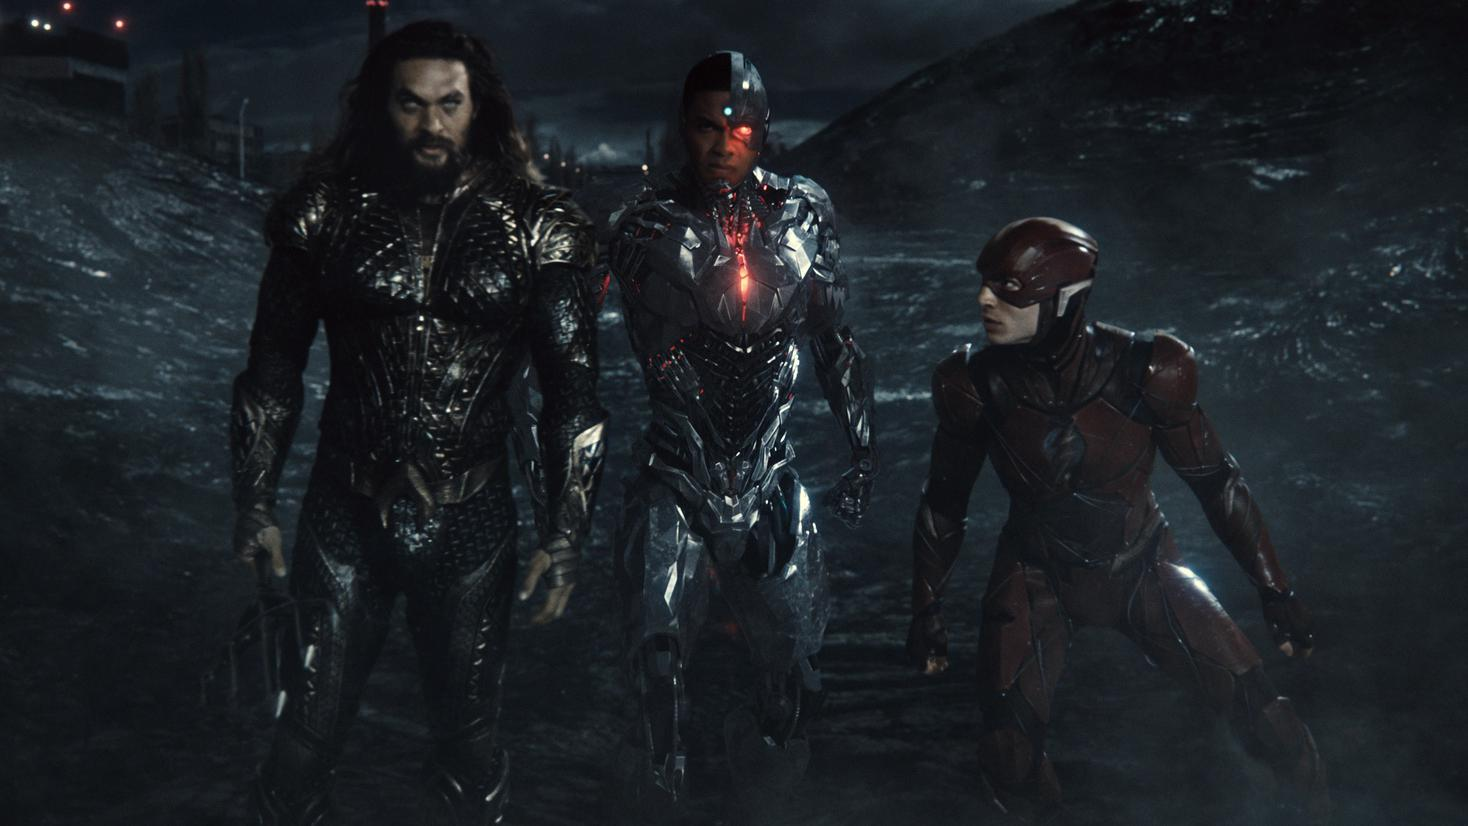 Jason Momoa, Ray FIsher and Ezra Miller in Zack Snyder's 'Justice League'